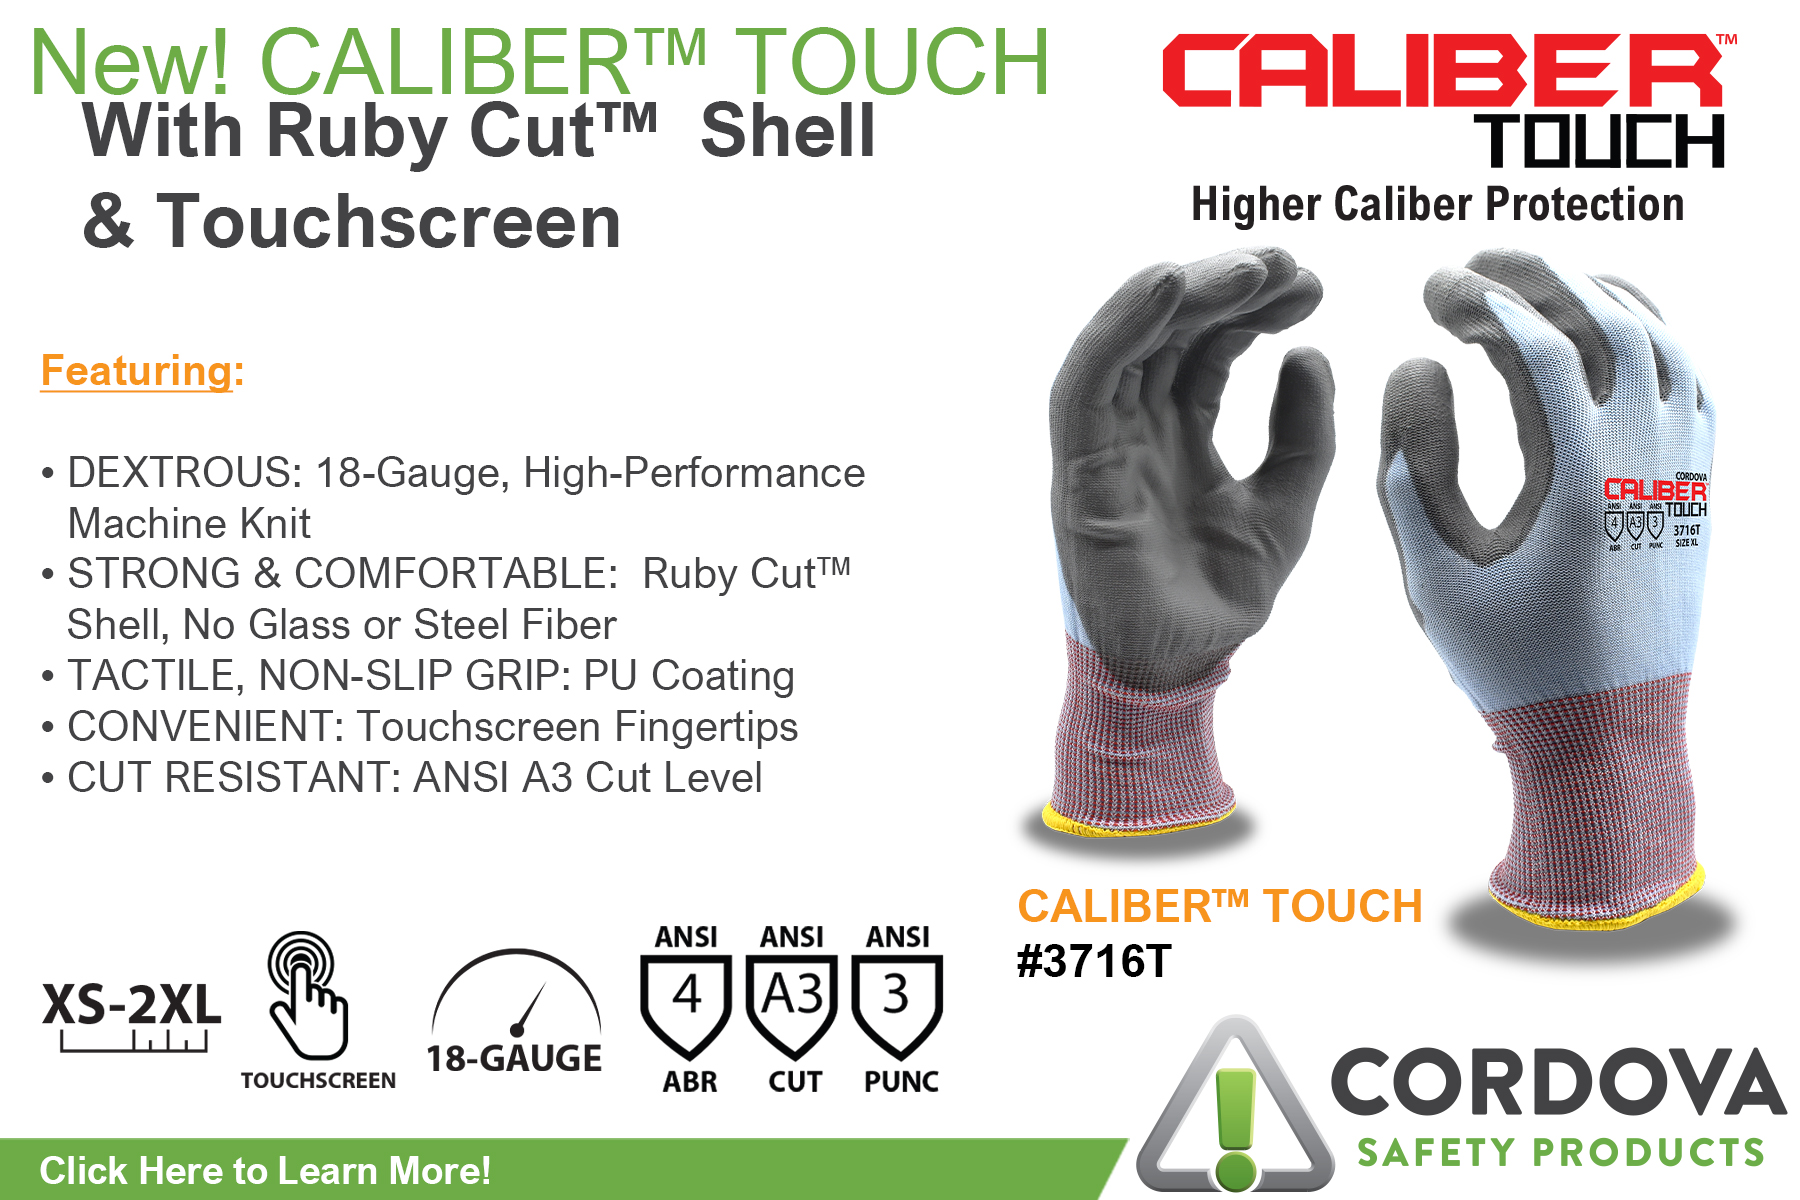 CALIBER TOUCH 3716T epromo